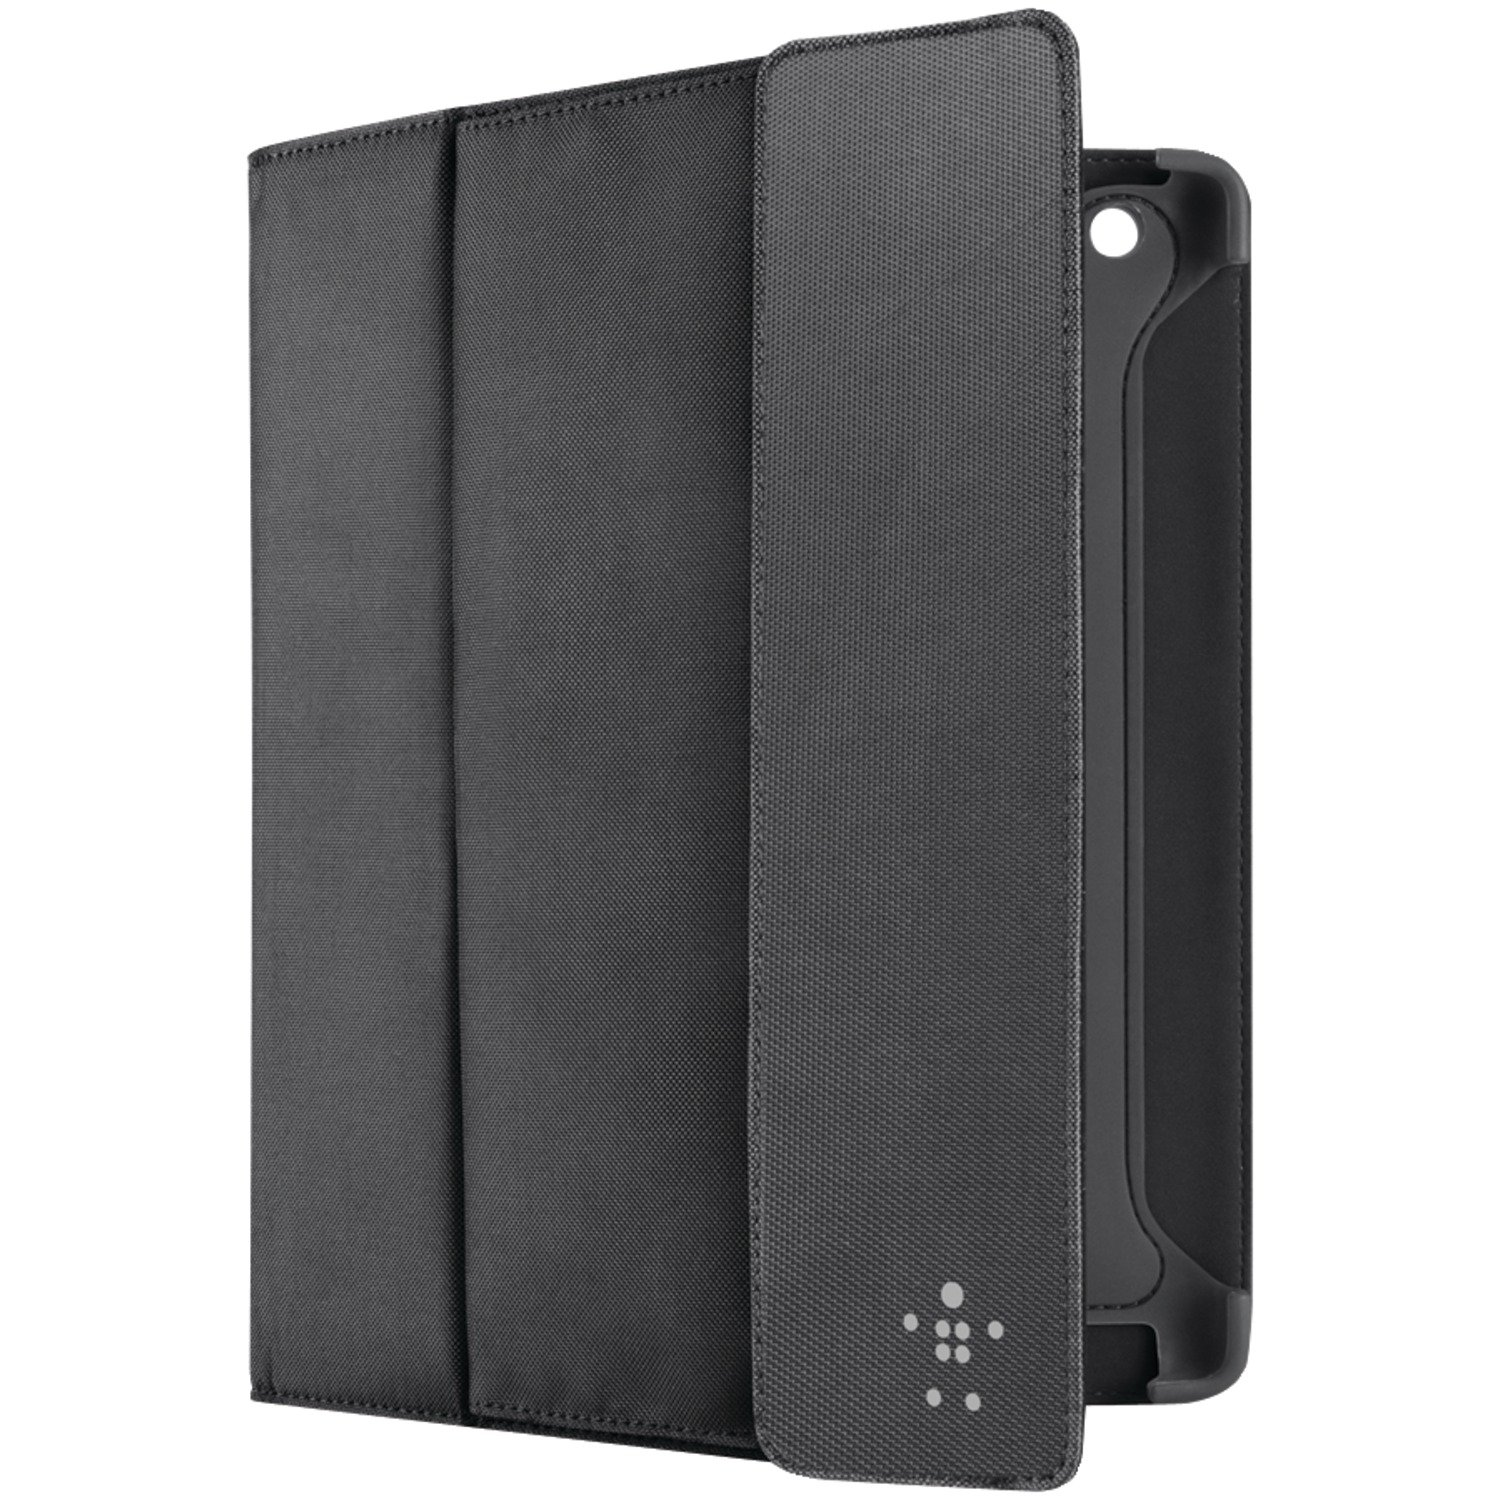 Belkin Professional Storage Folio with Screen Protection for iPad 2/3/4 (B2A001-C00)